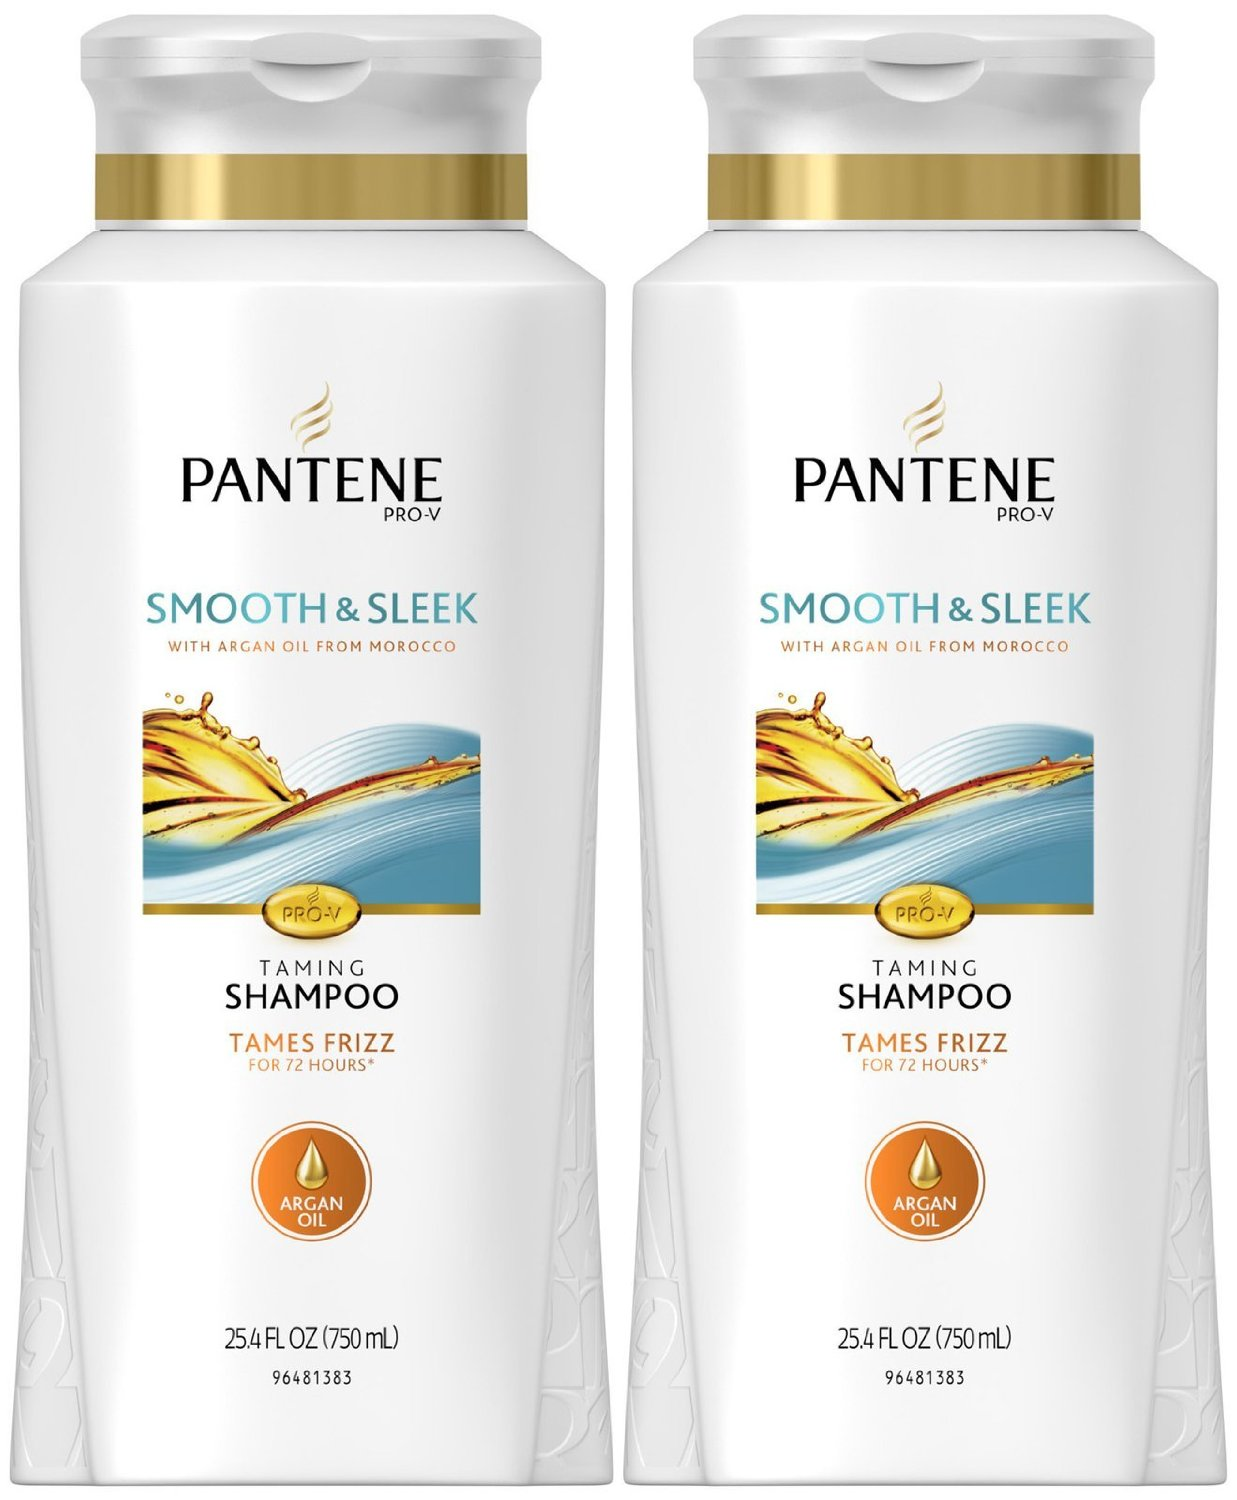 Cheap Sleek Hair Shampoo Find Deals On Line At Pantene Sampo Hairfall Control 750ml Get Quotations Pro V Thick Smooth With Argan Oil 254 Oz